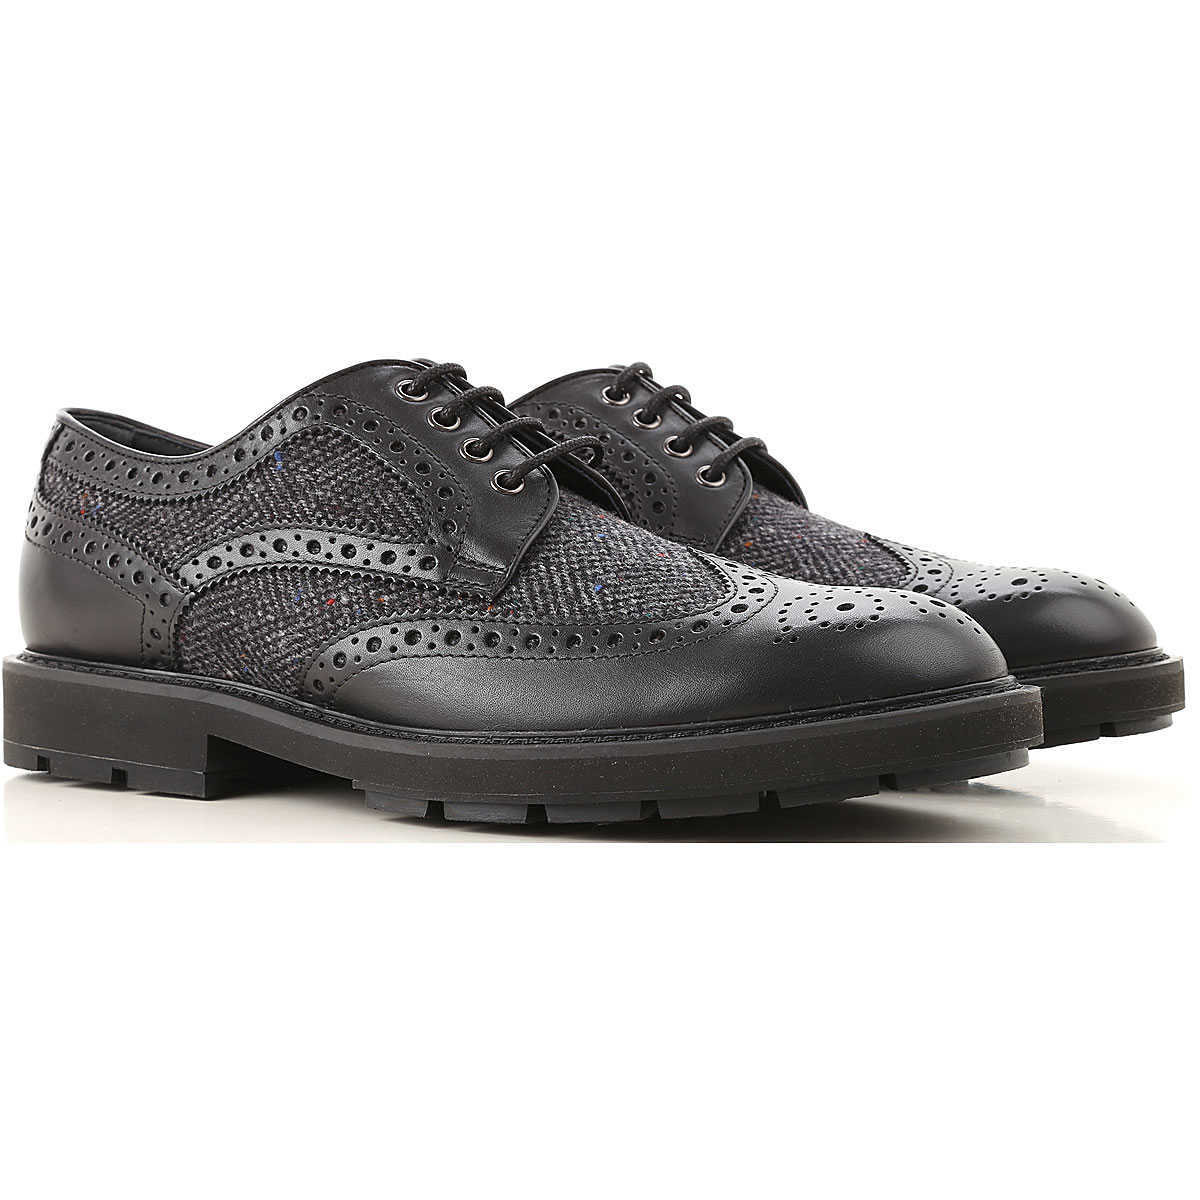 Tods Lace Up Shoes for Men Oxfords 10 6 6.5 9 Derbies and Brogues On Sale UK - GOOFASH